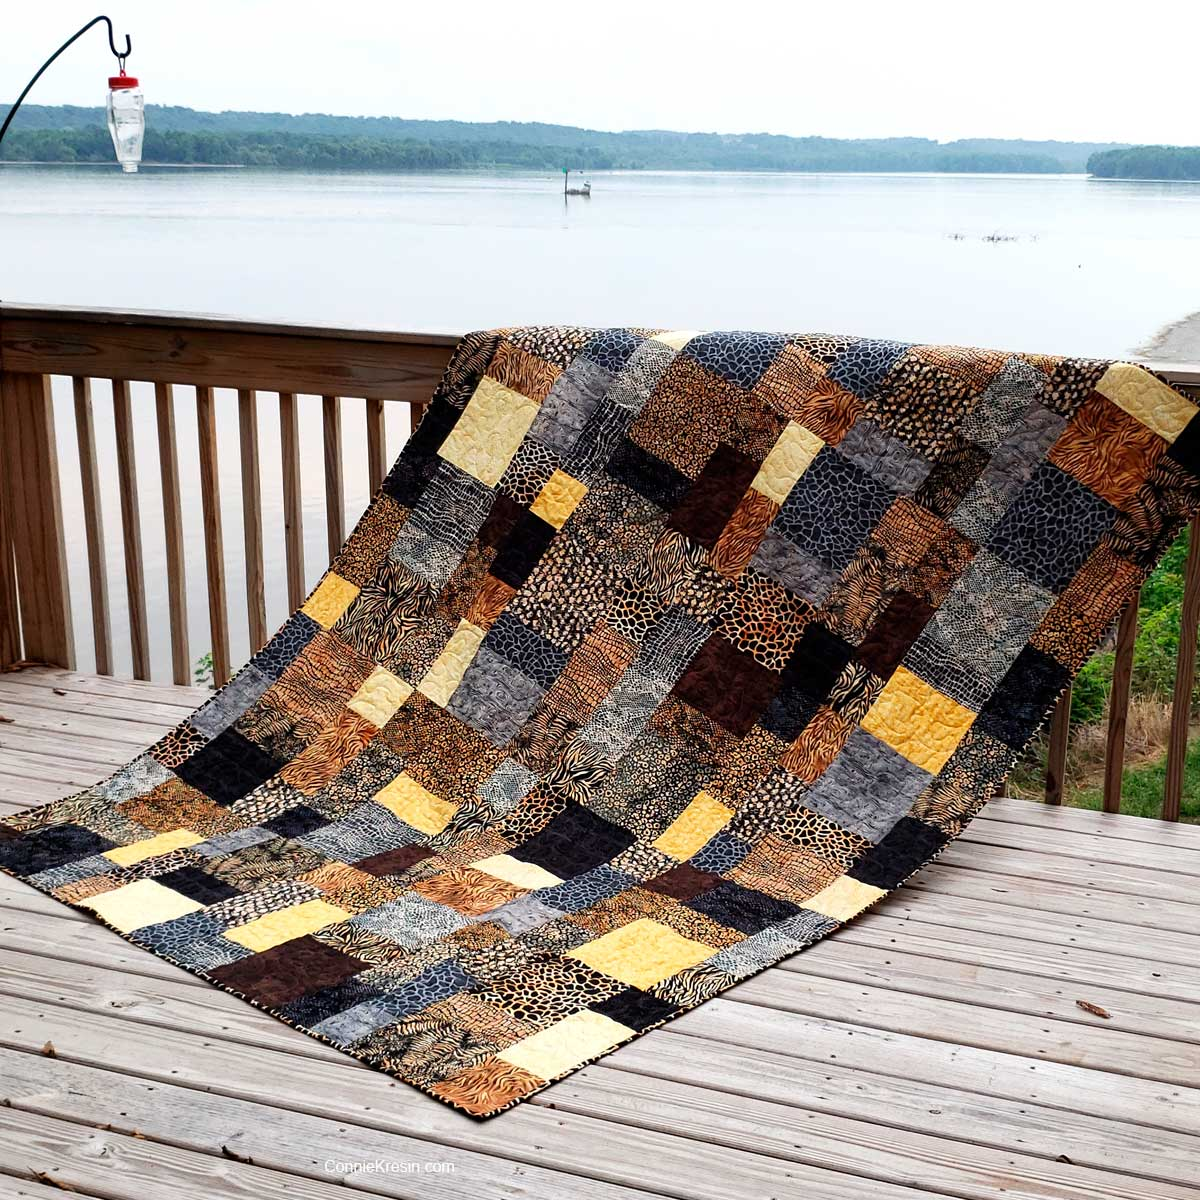 Stacks quilt shown in brown and tan batiks